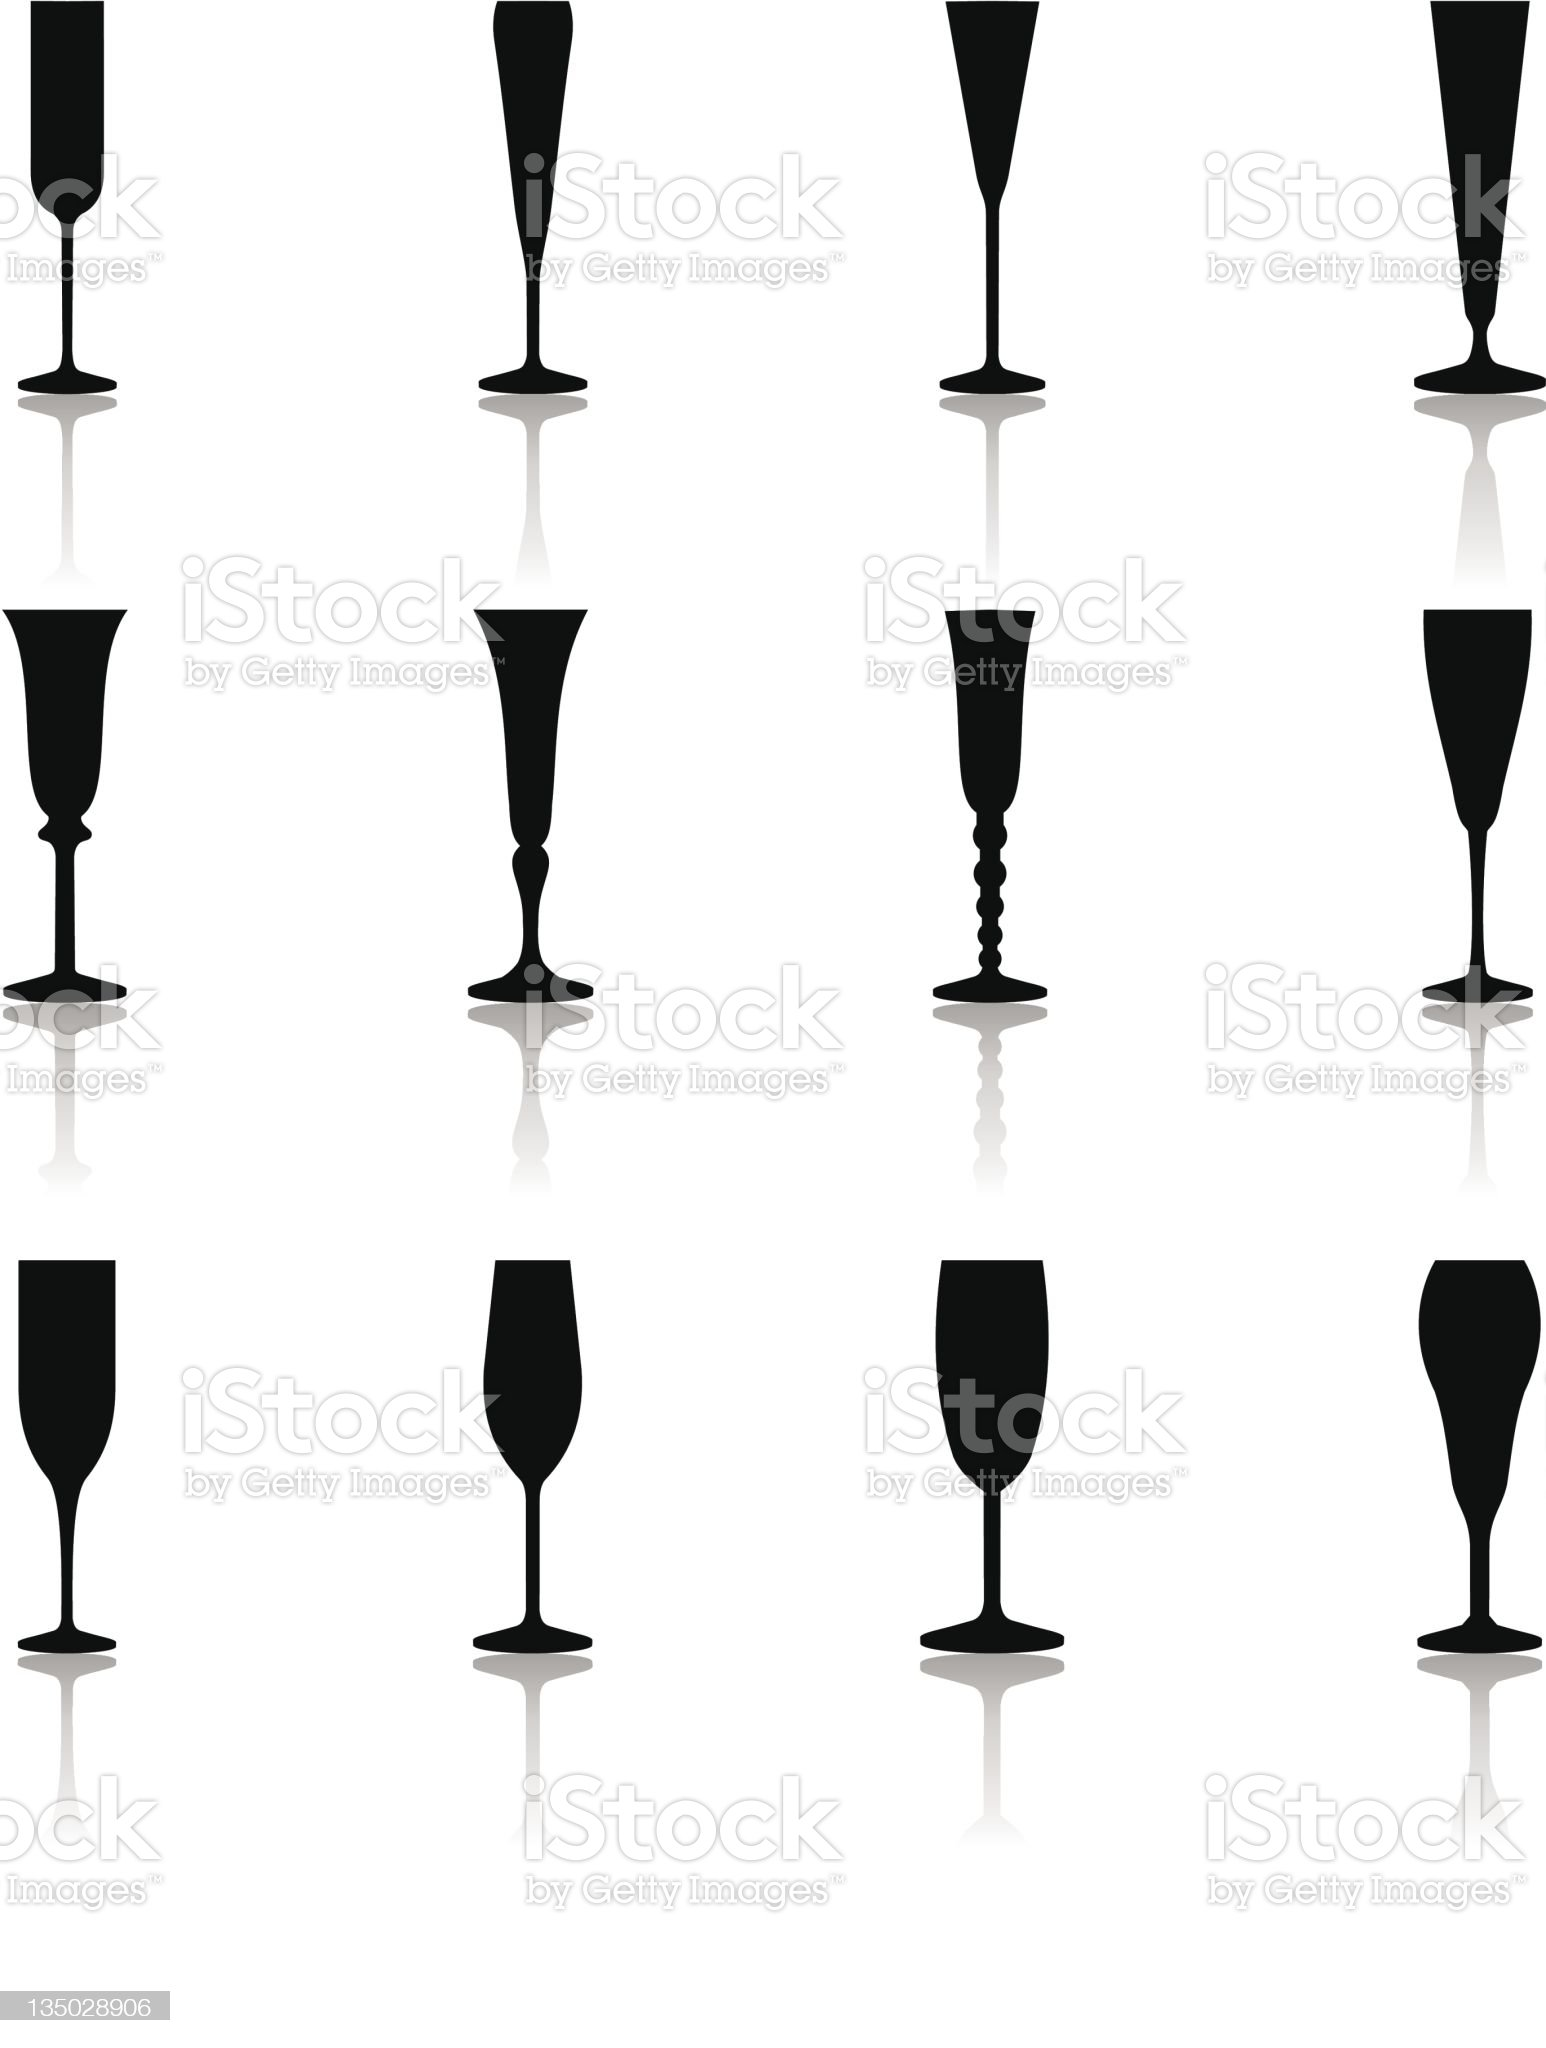 Glass Icons Flute Glasses royalty-free stock photo